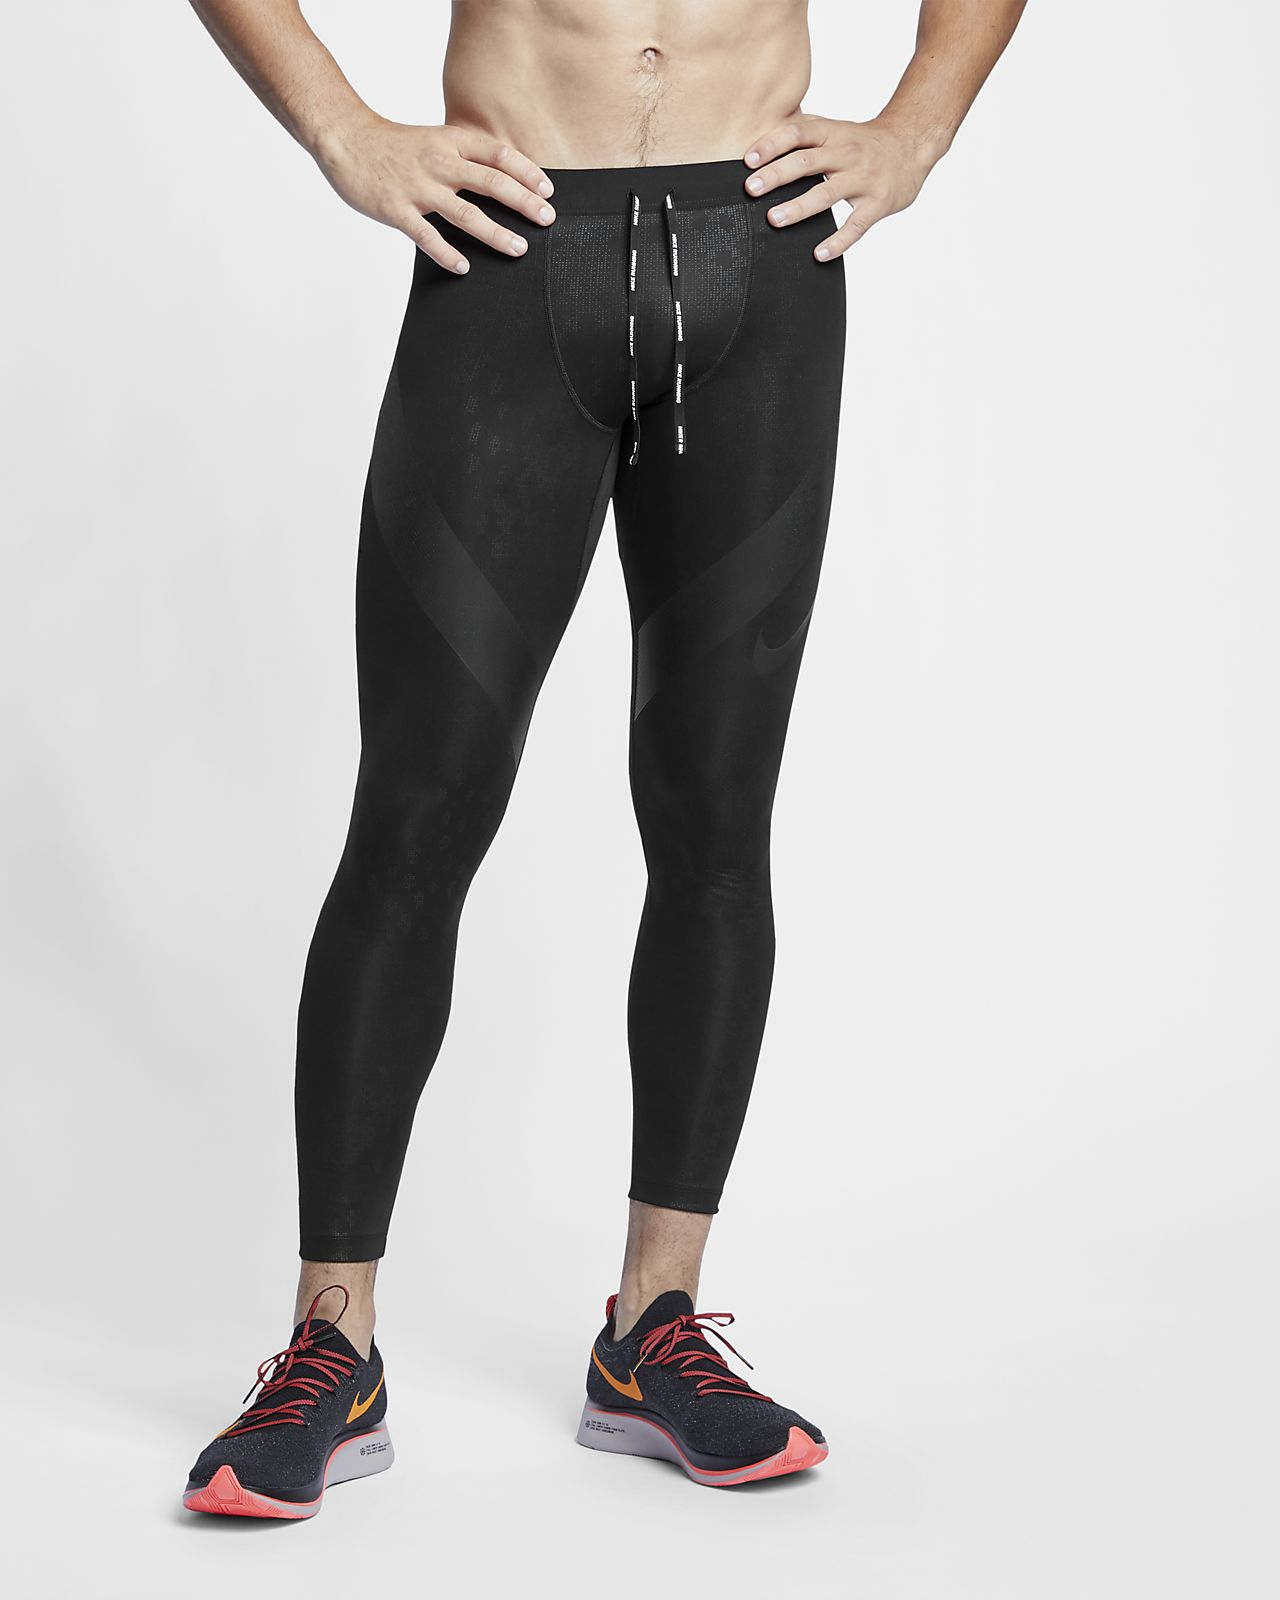 Nike Power Tech Malles de running - Home